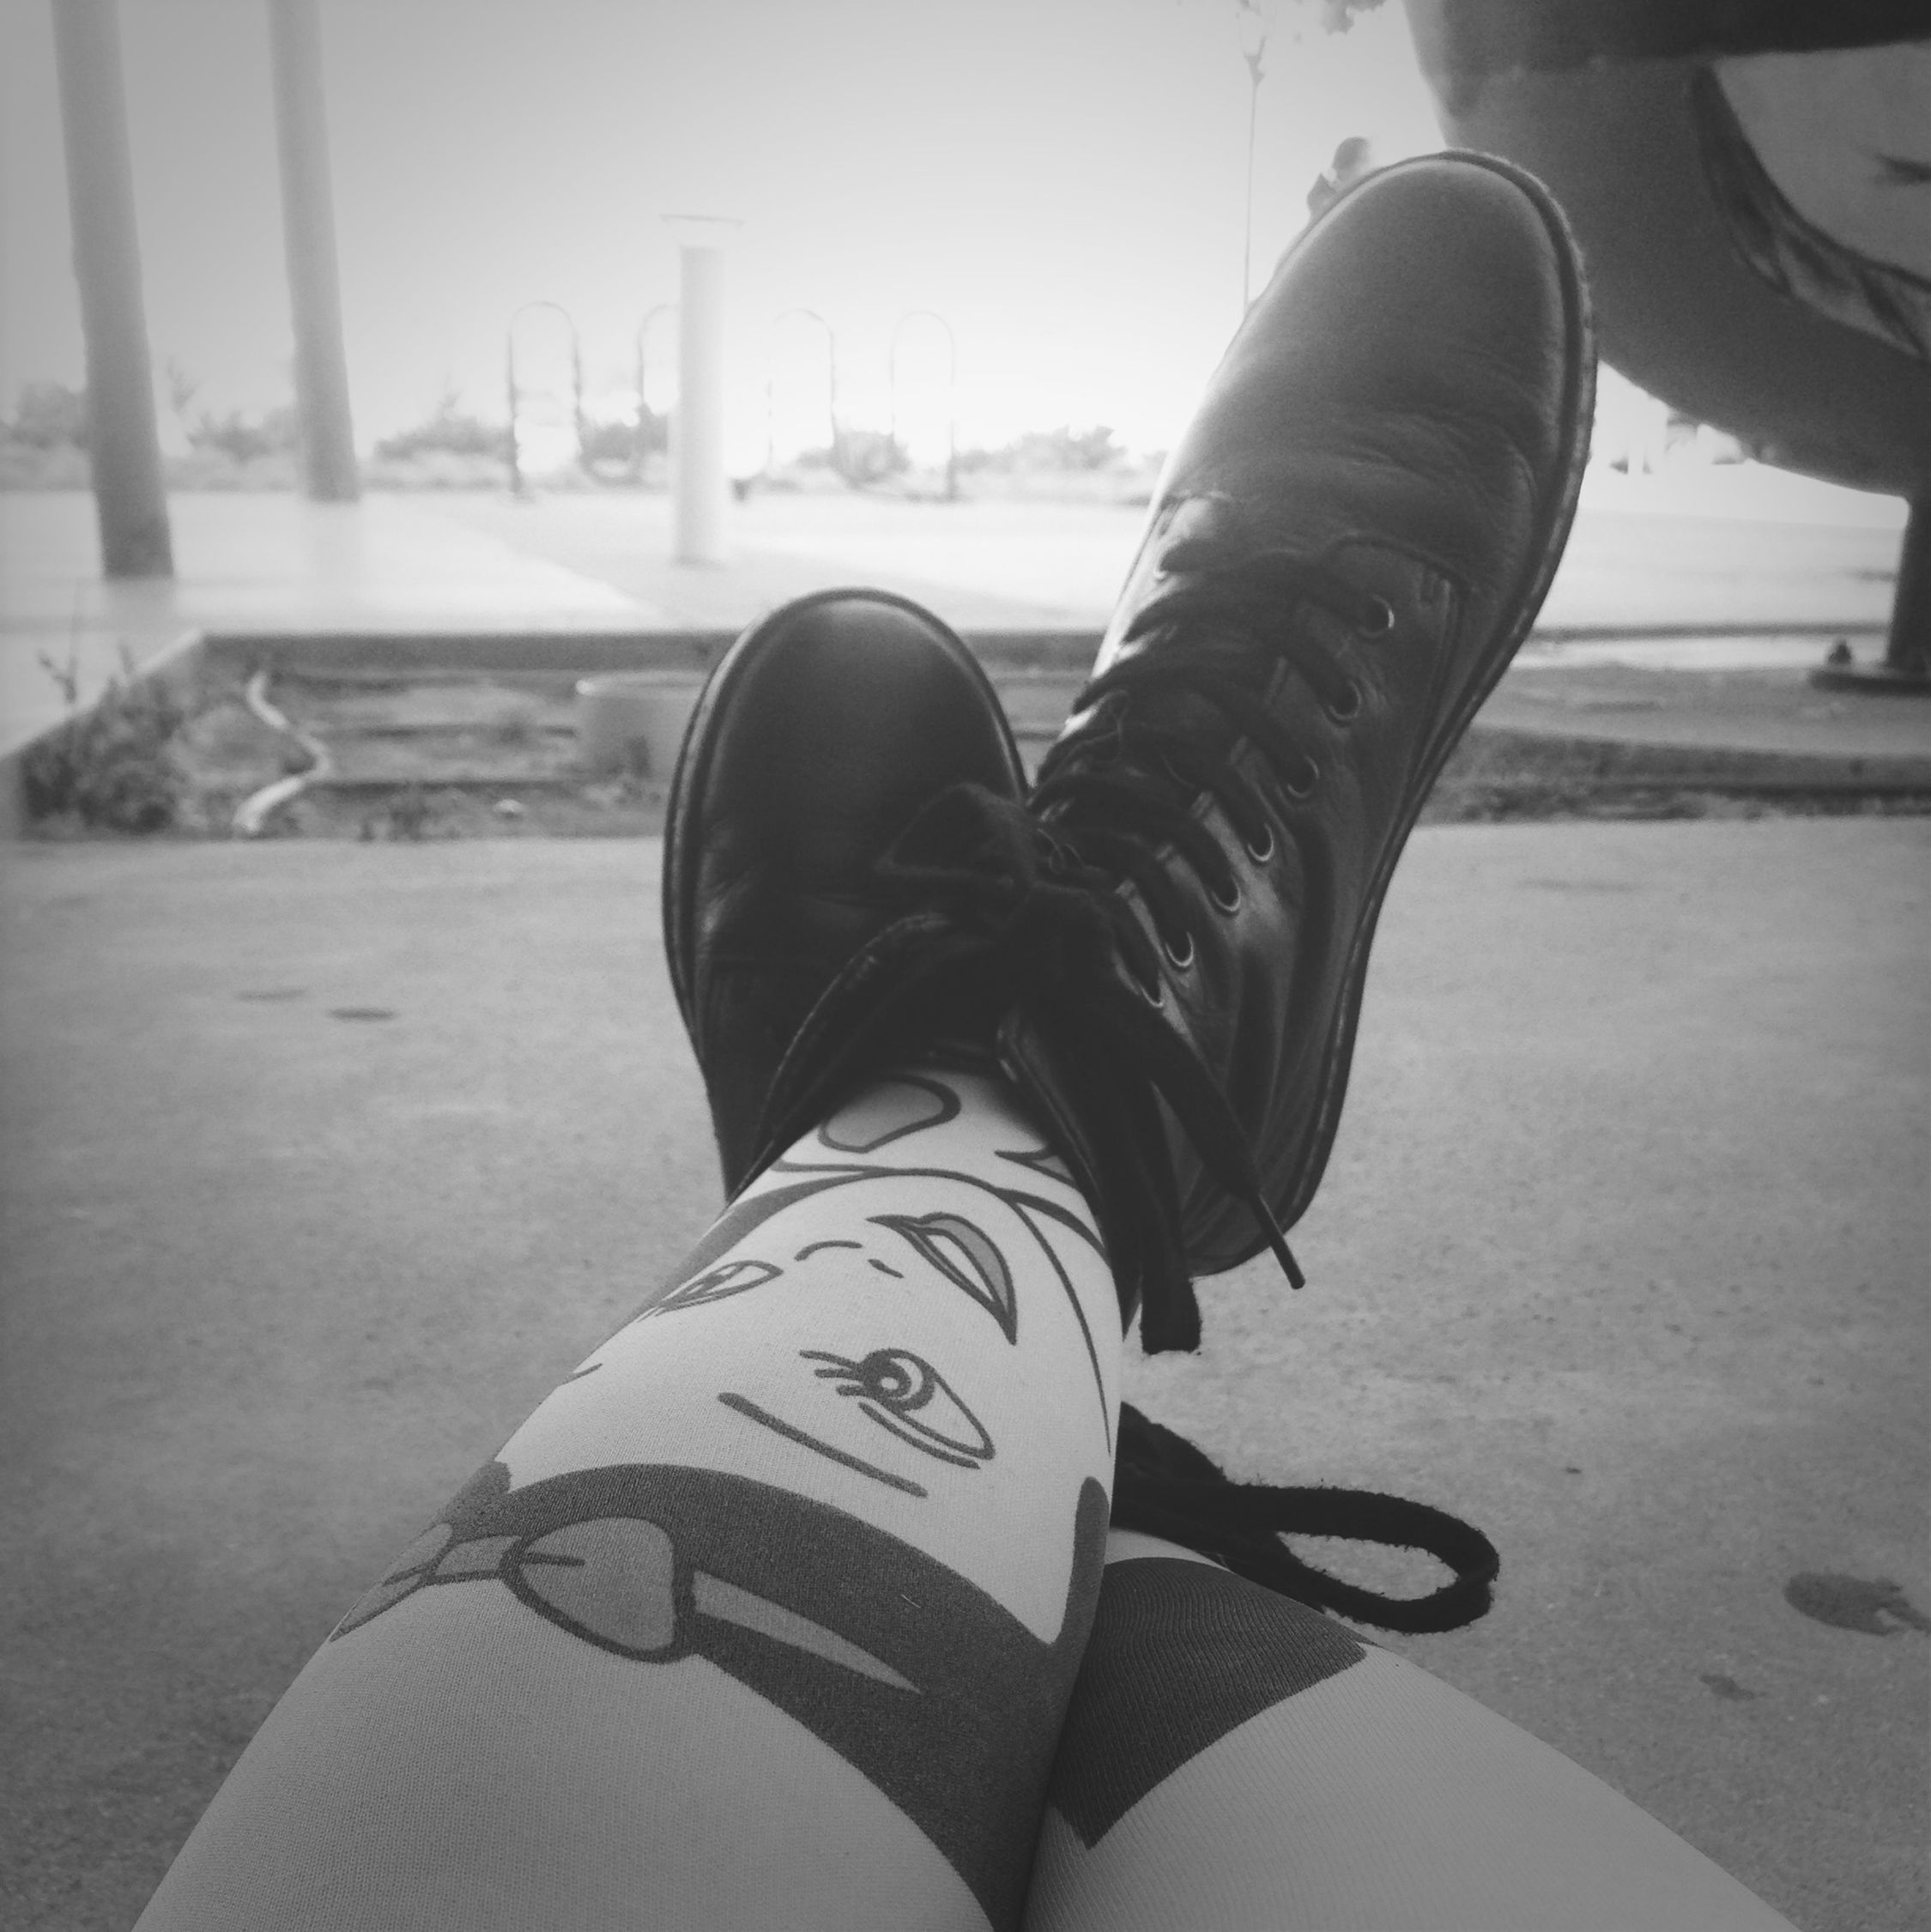 Doc Martens & Disney Tattoos are the Shit . Soft Grunge Taking Photos Antisocial Normainfinity